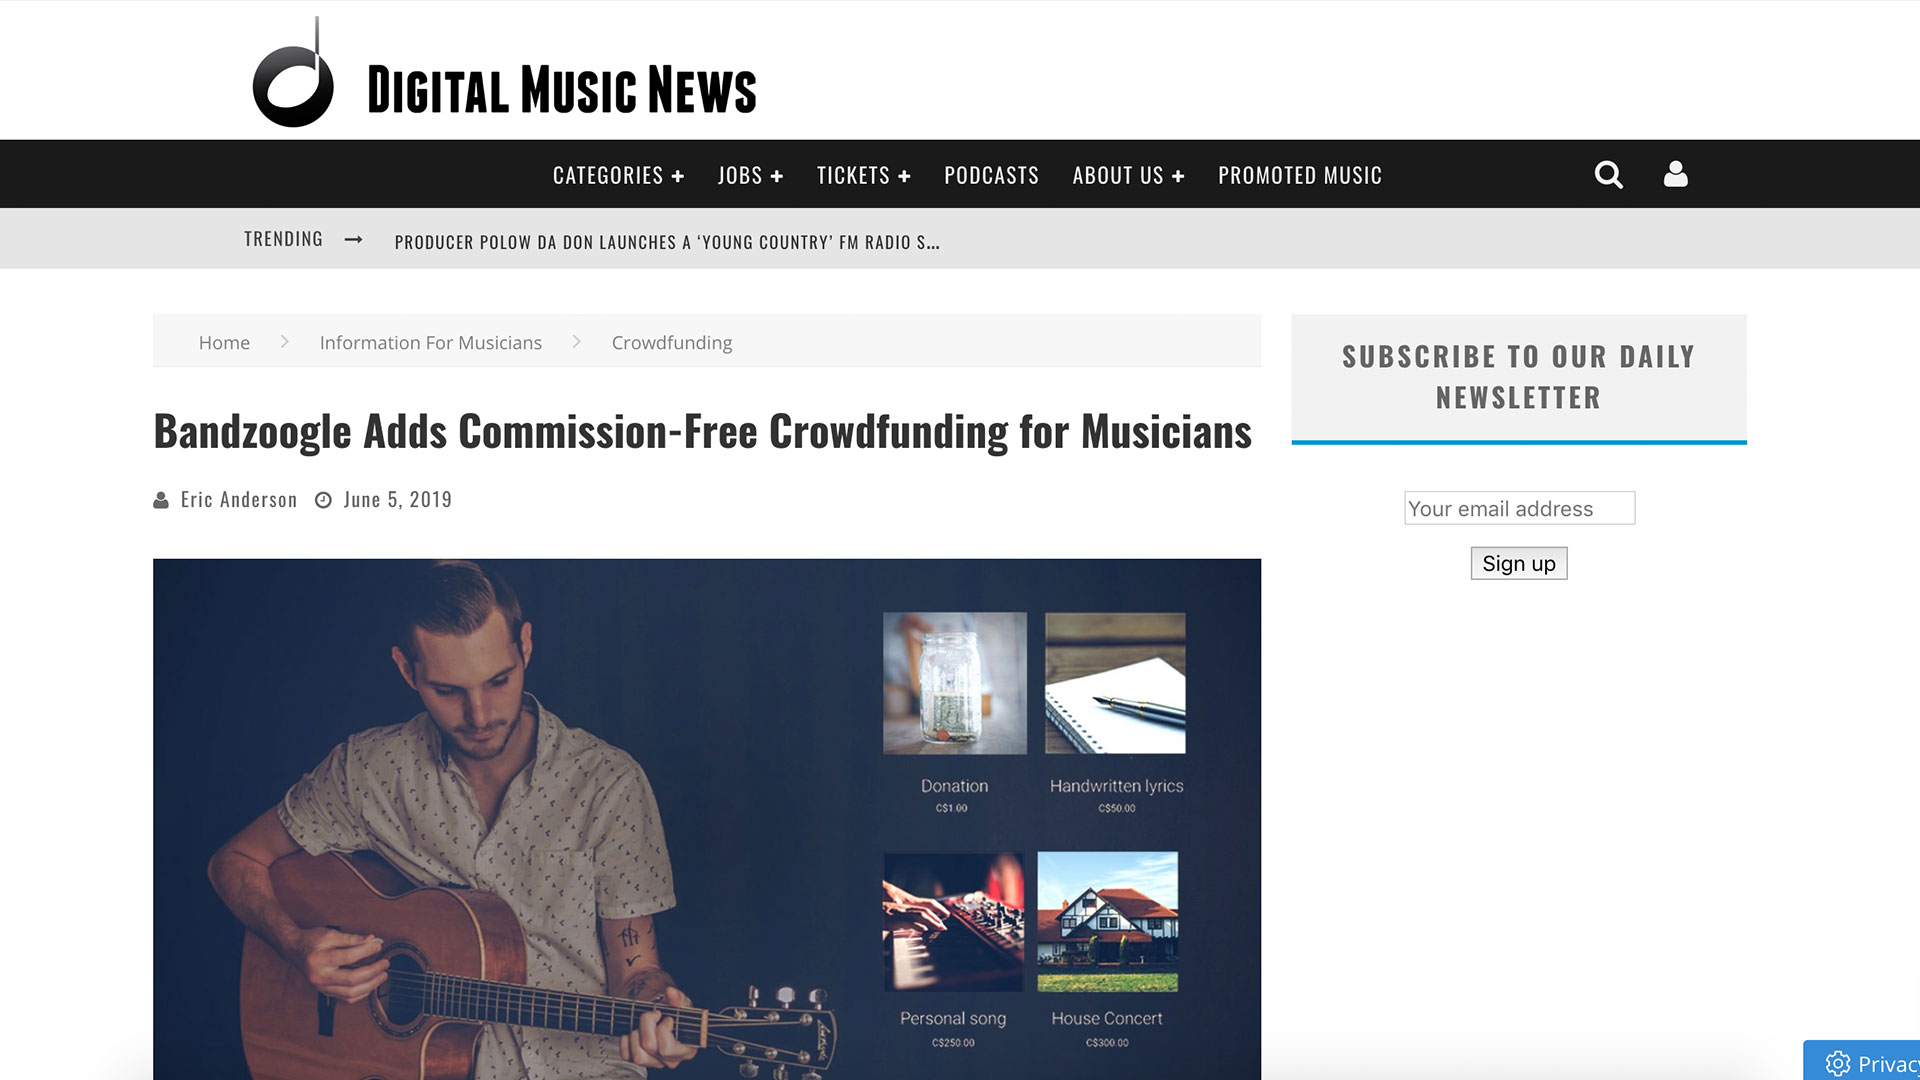 Fairness Rocks News Bandzoogle Adds Commission-Free Crowdfunding for Musicians